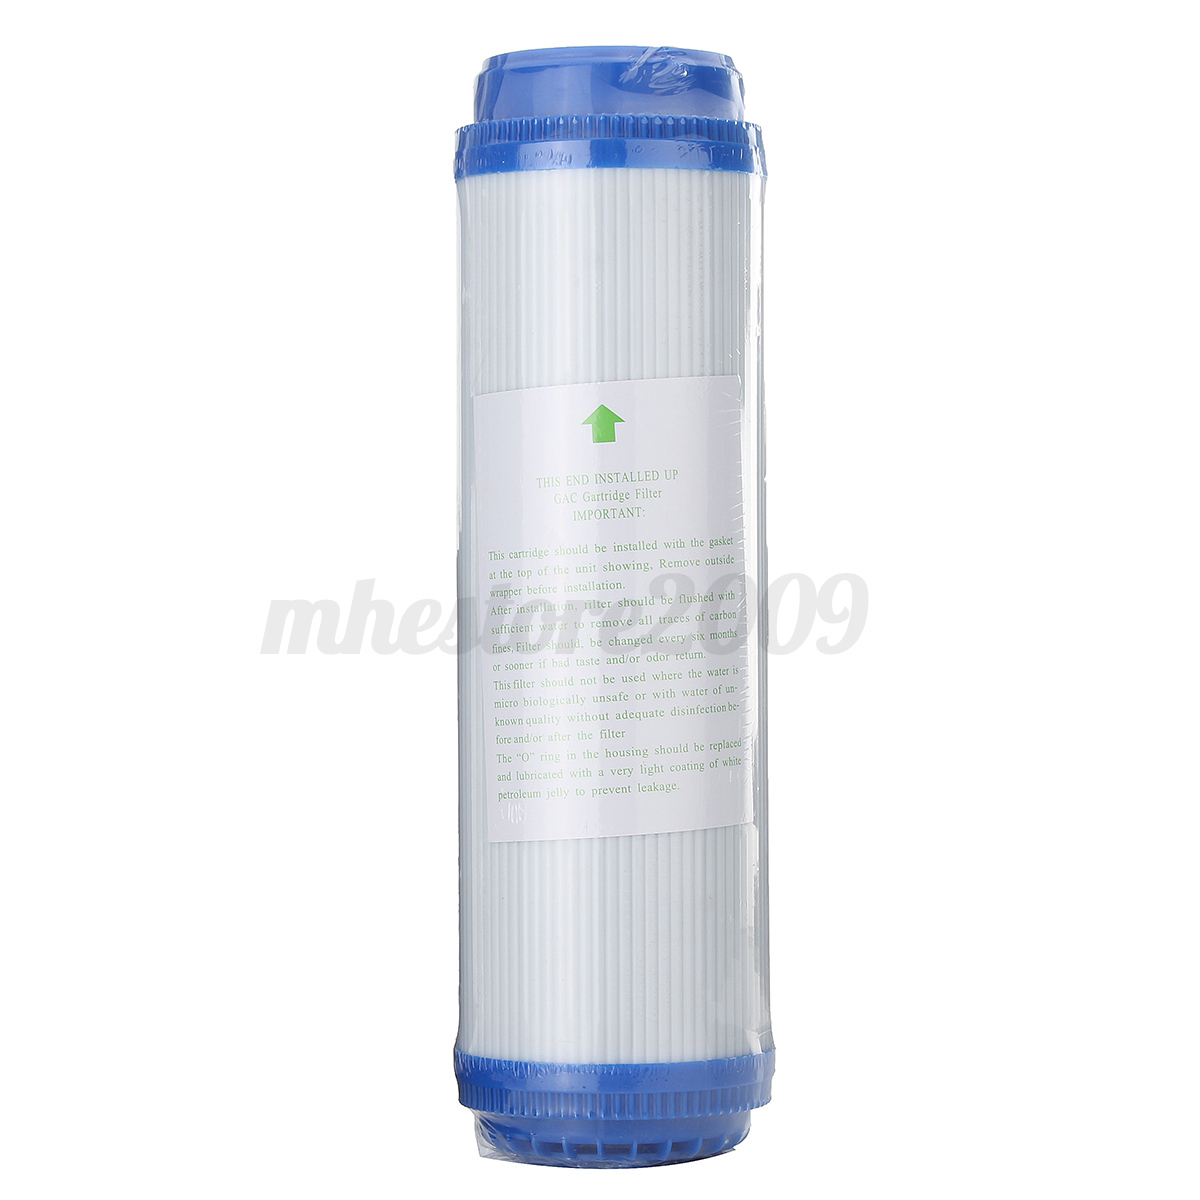 Whole House Sediment Water Filter Dual Whole House Reverse Osmosis Water Filter Purifier Carbon